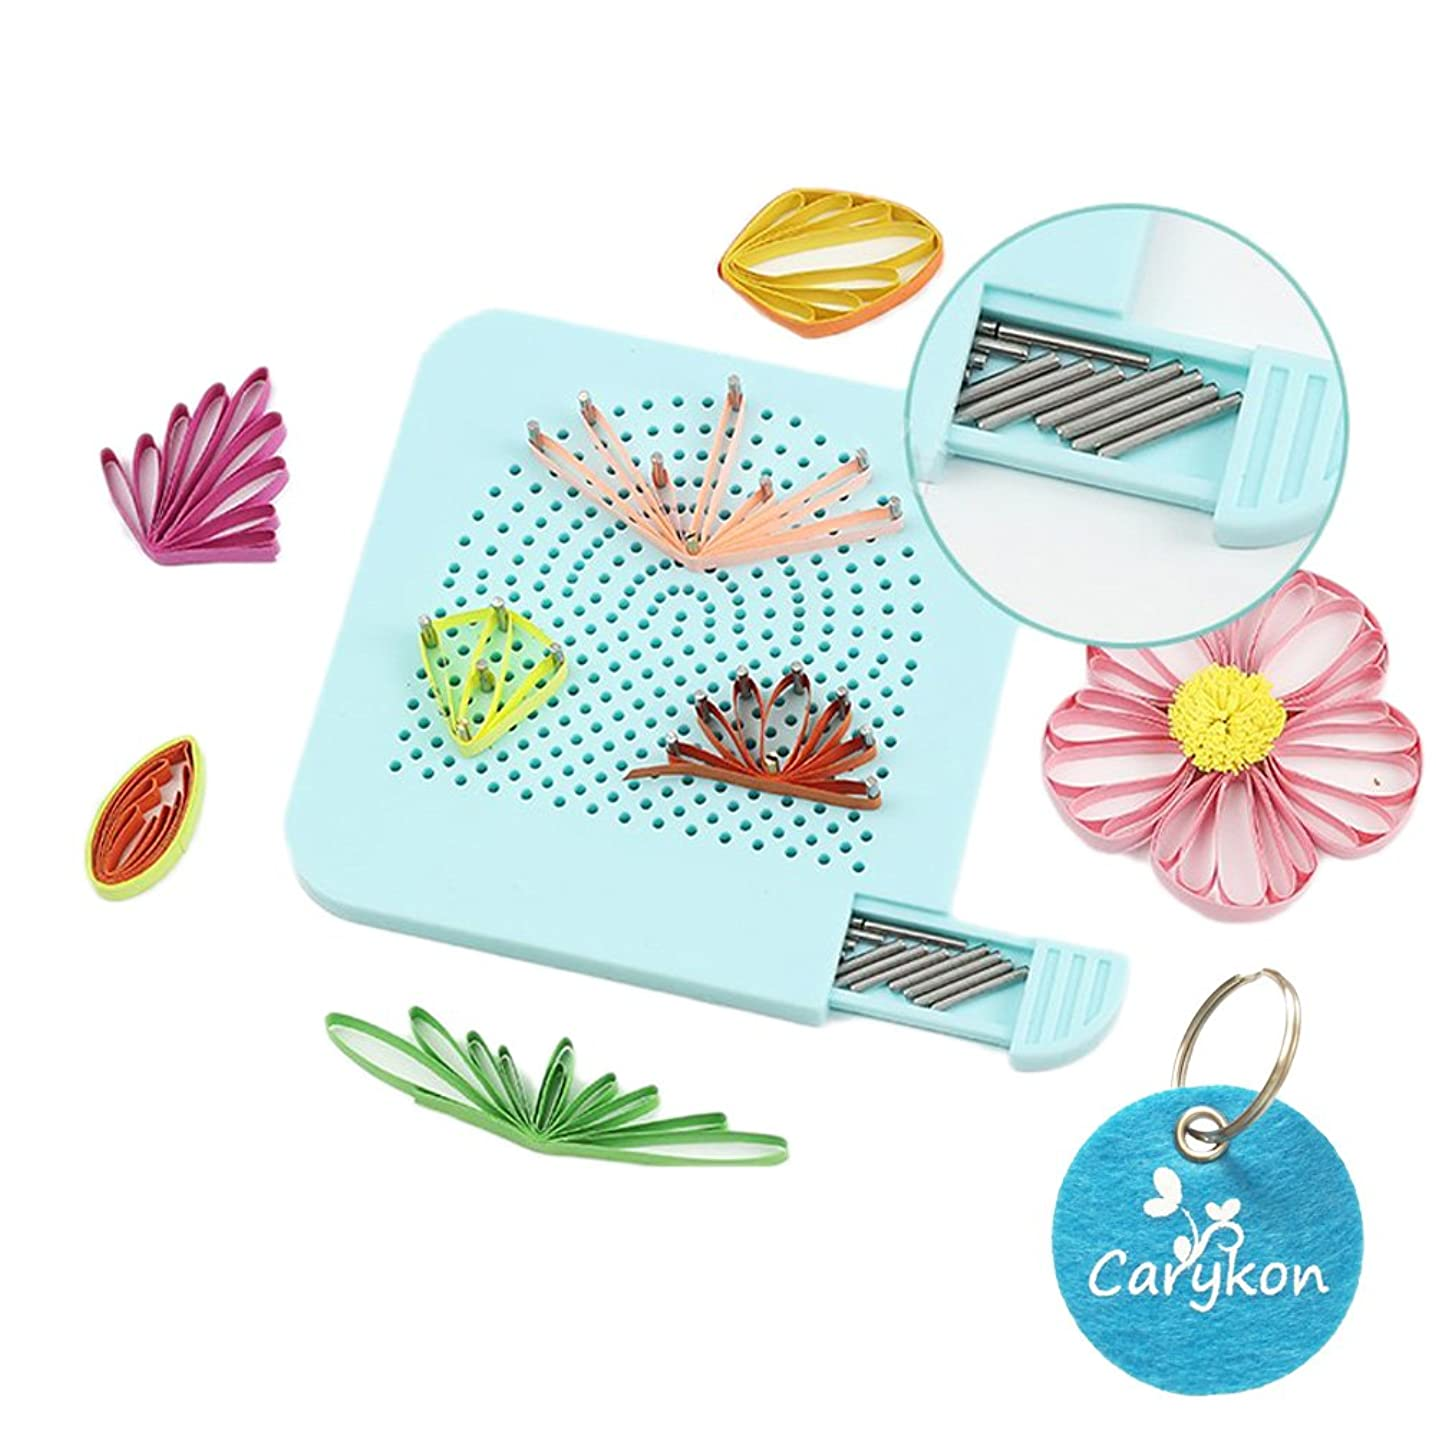 Carykon Roll Quiller's Grid Guide Quilling Board with Pins Storage for Paper Crafting Winder Roll Square Craft DIY Tool (Light Blue)